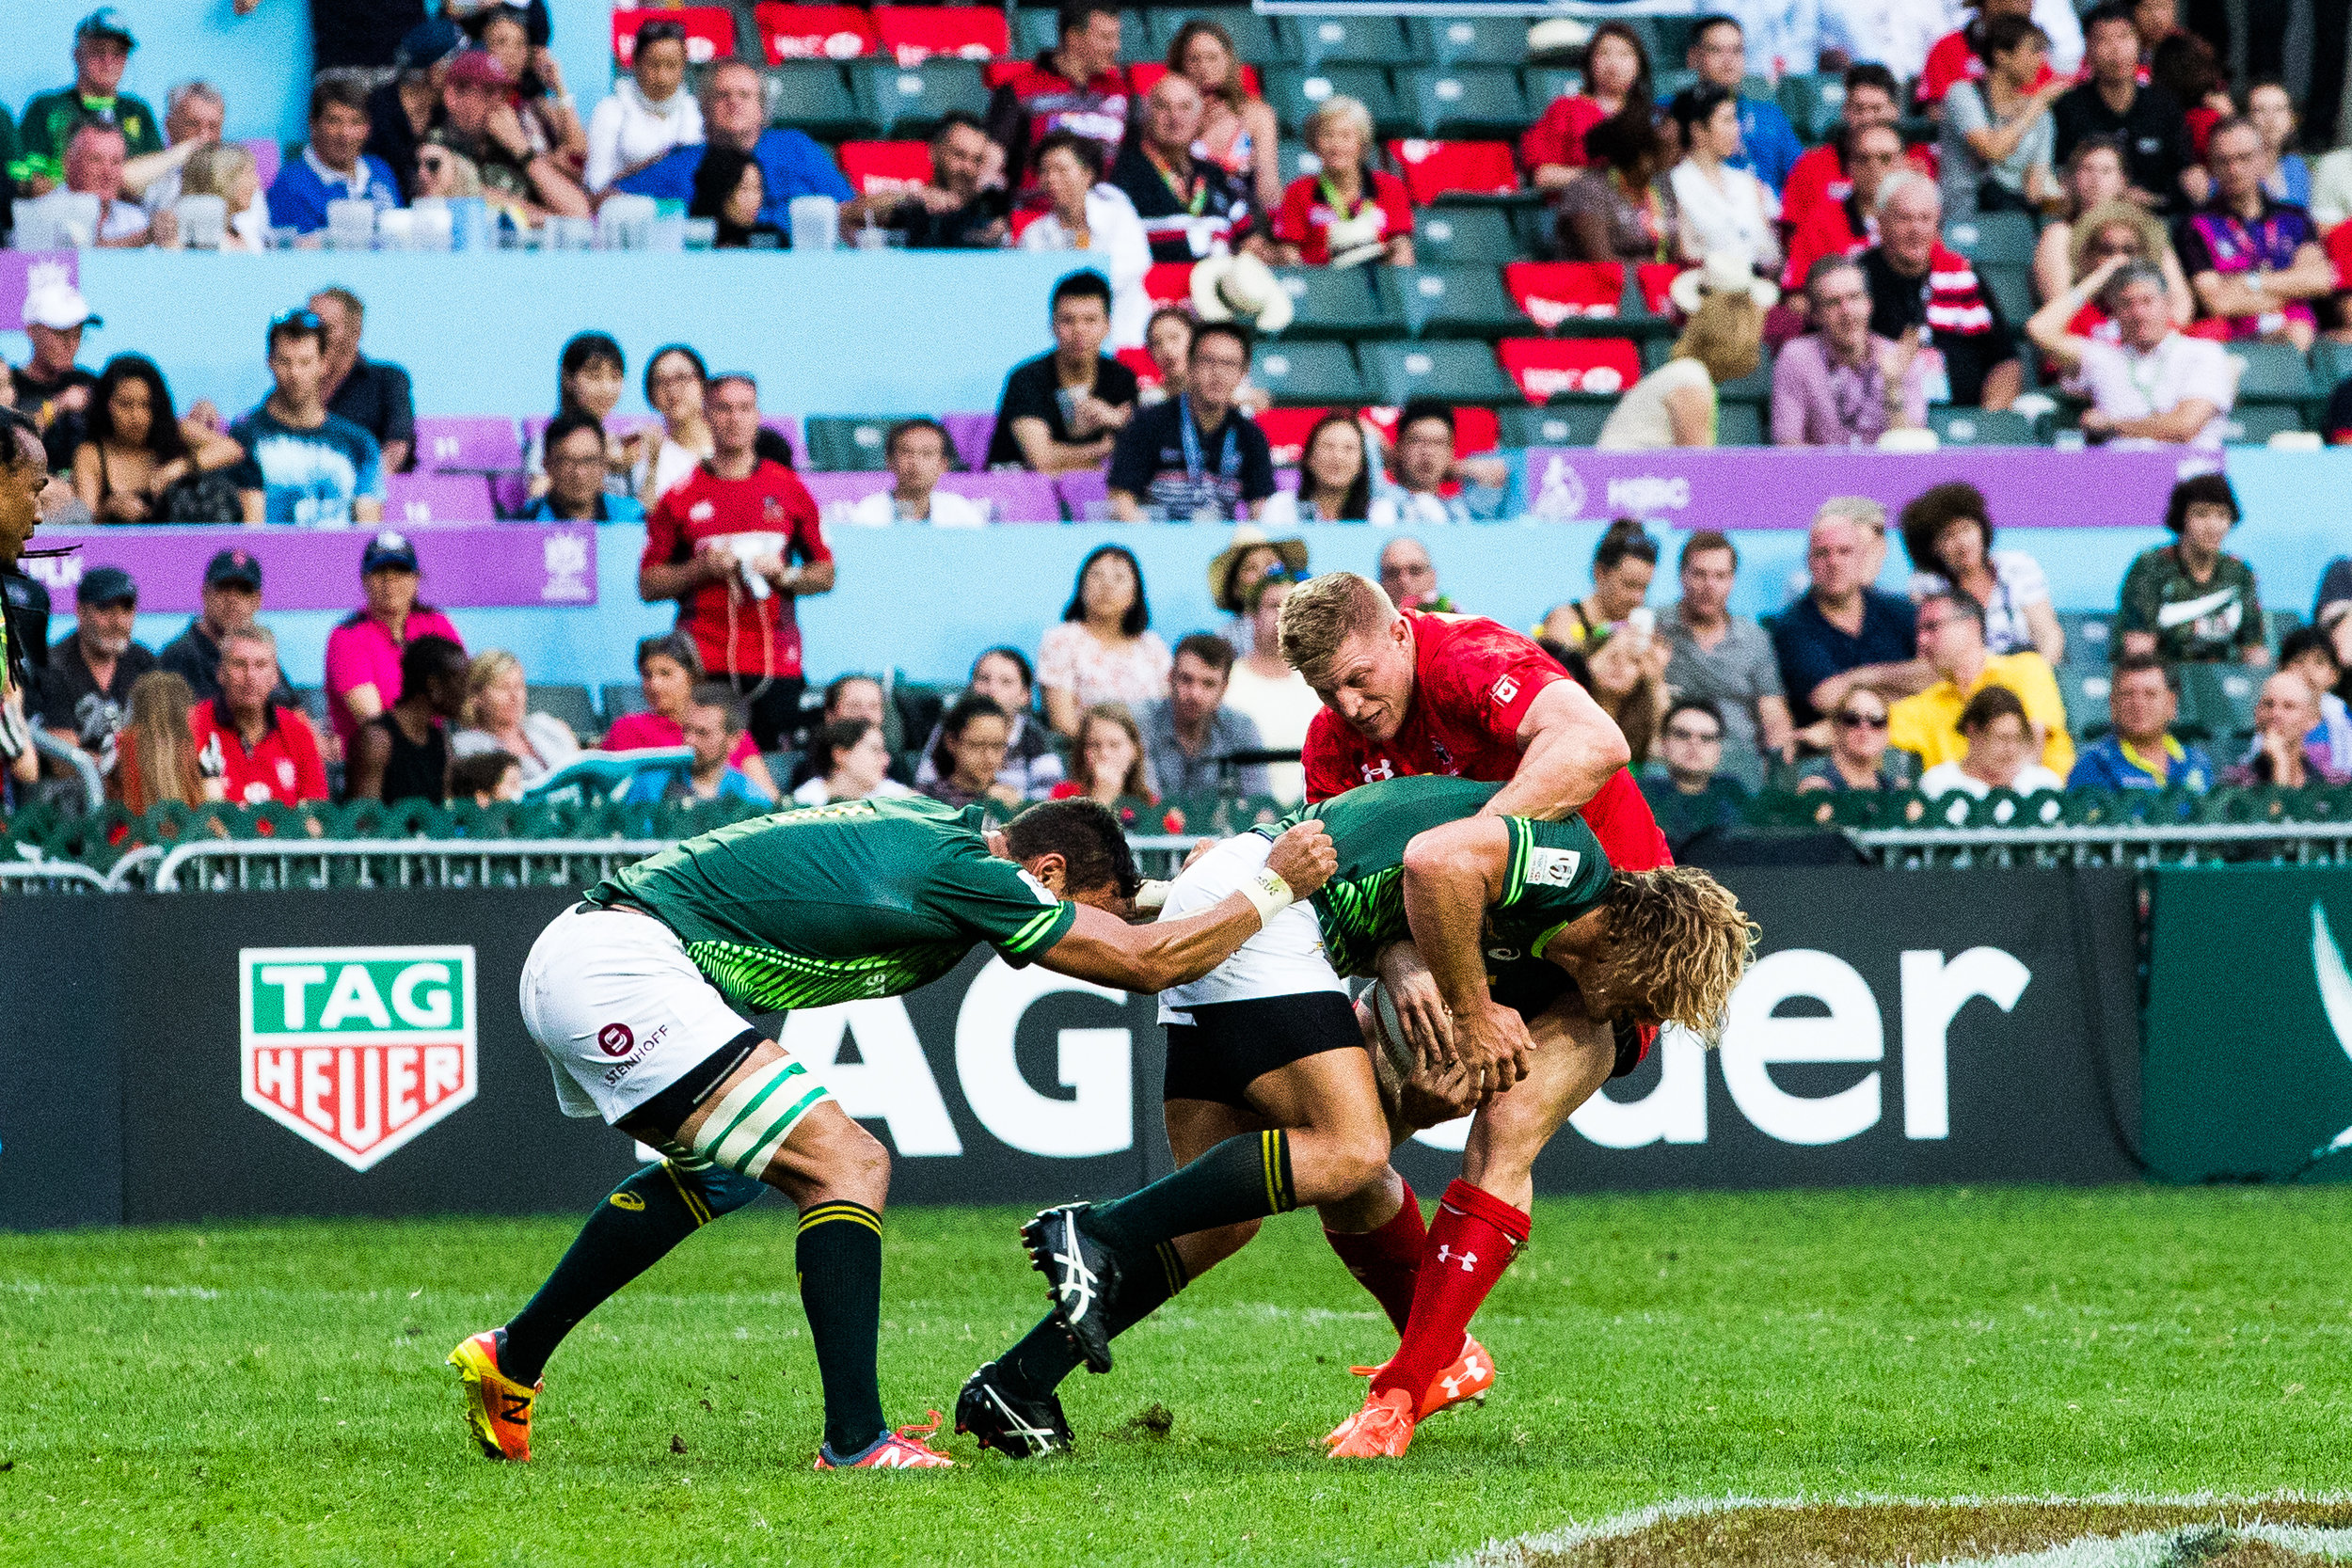 TAG Heuer Rugby 7s Hong Kong